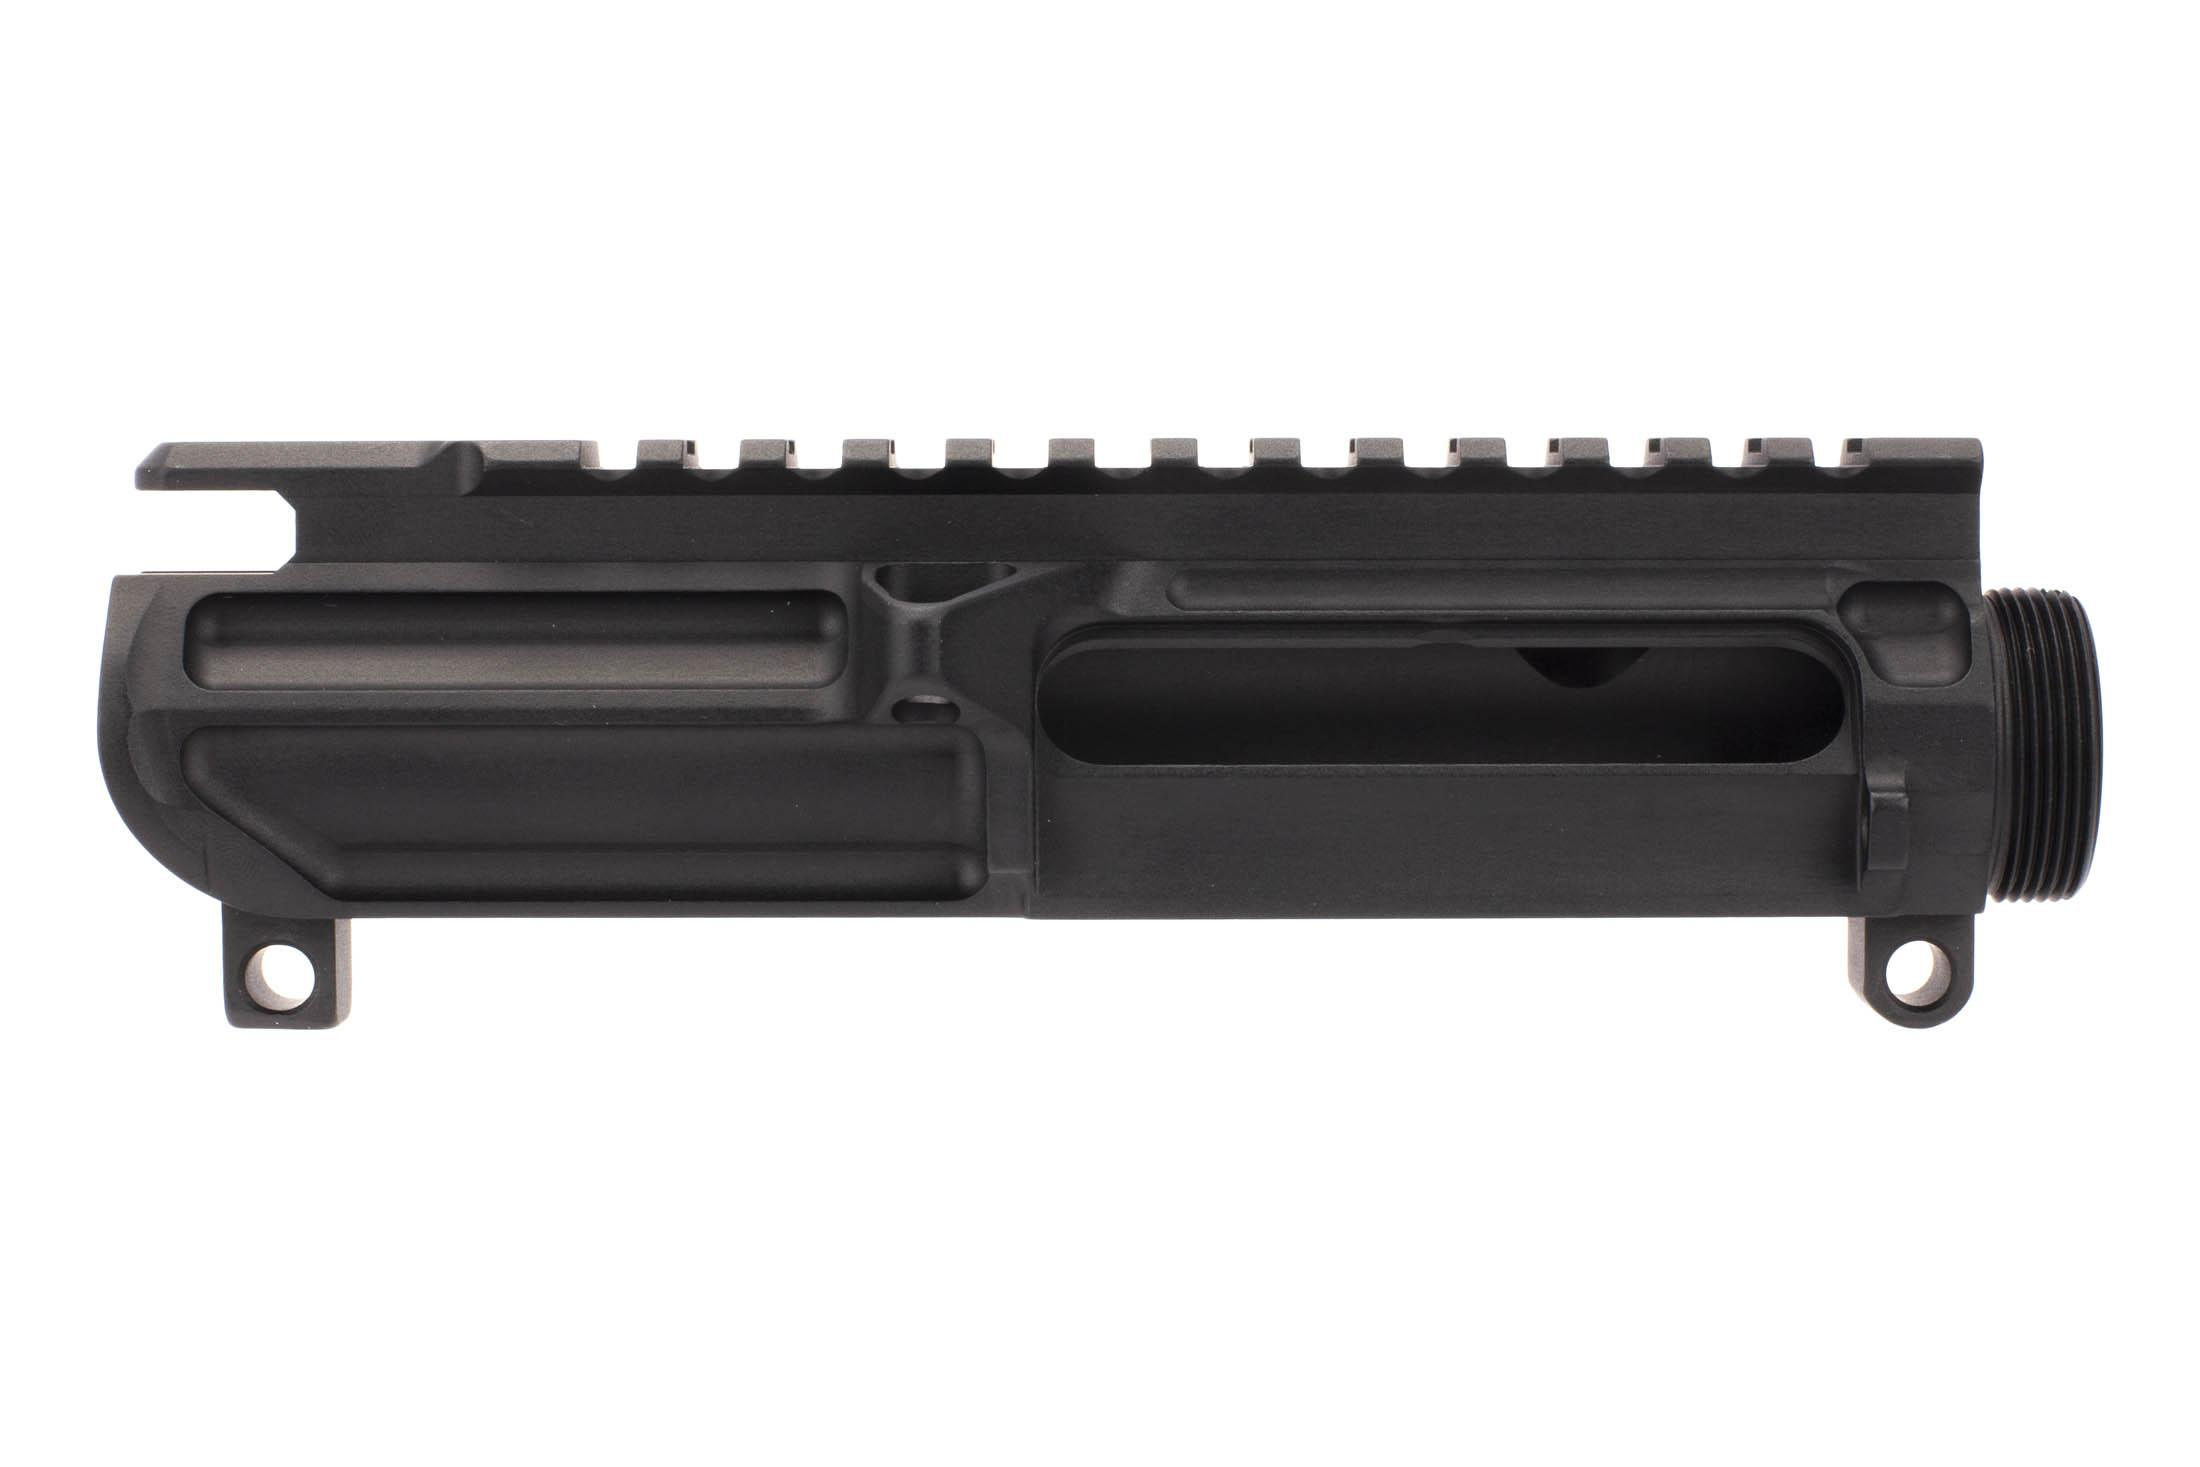 The Battle Arms Development lightweight upper receiver features a Mil-Spec hardcoat anodized black finish